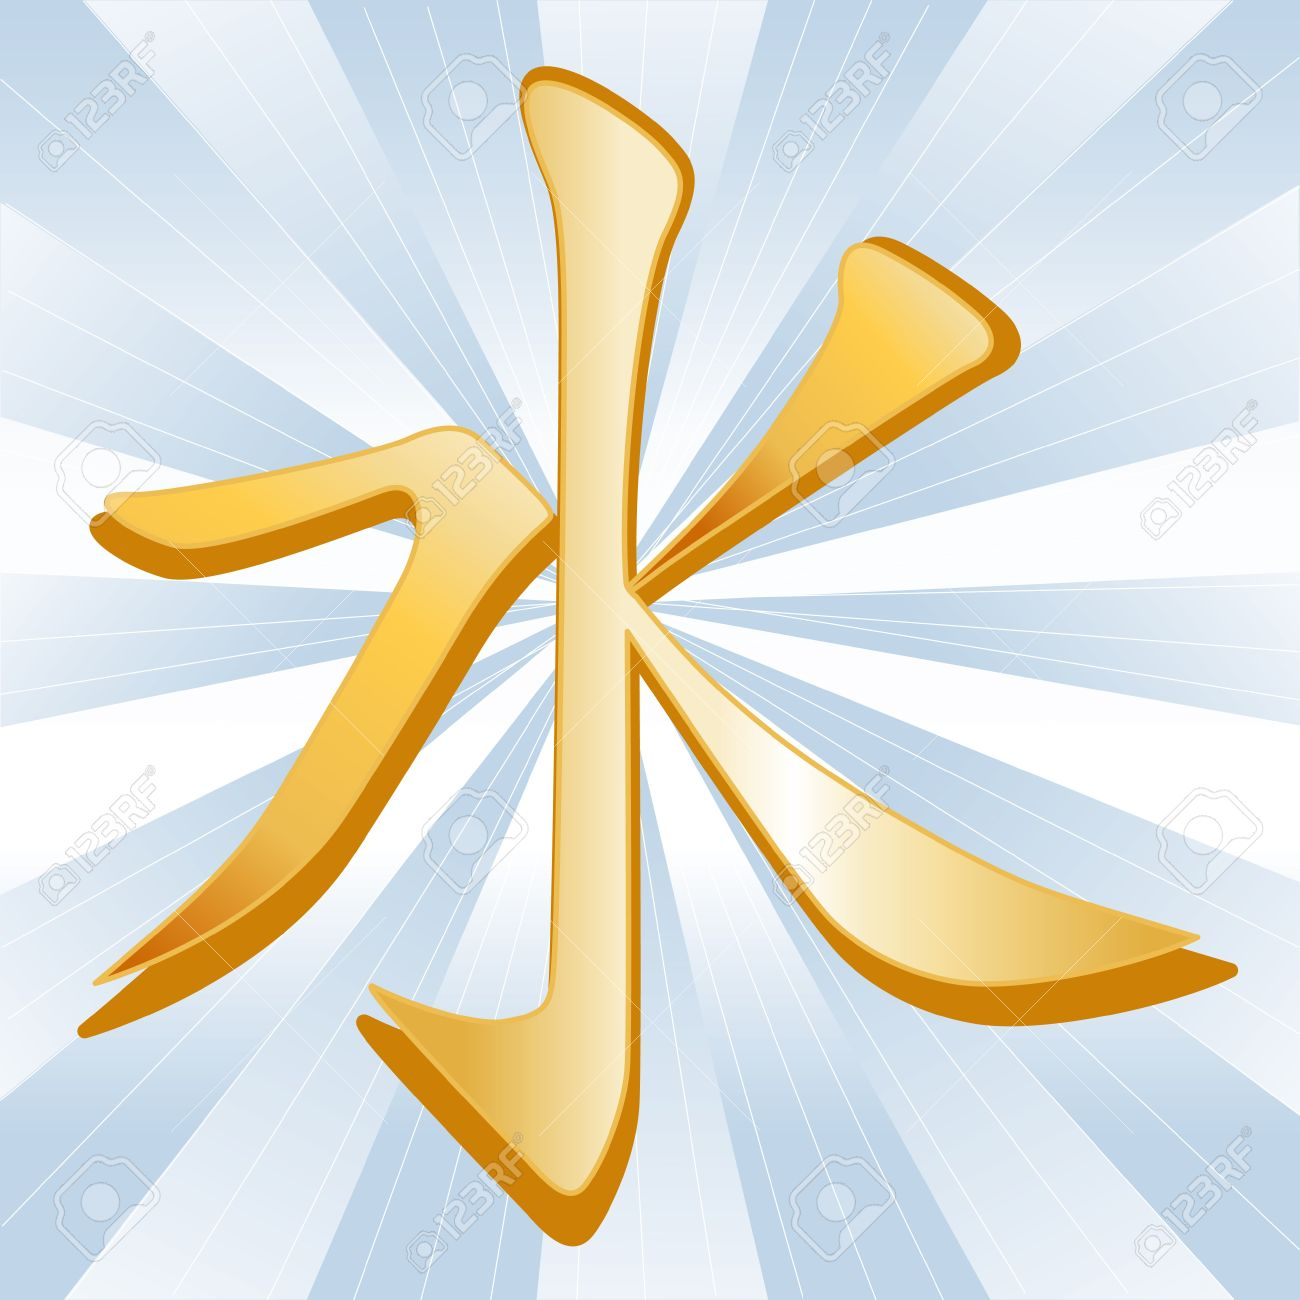 Confucianism symbol golden icon of the confucian tradition on confucianism symbol golden icon of the confucian tradition on a sky blue background with rays biocorpaavc Images